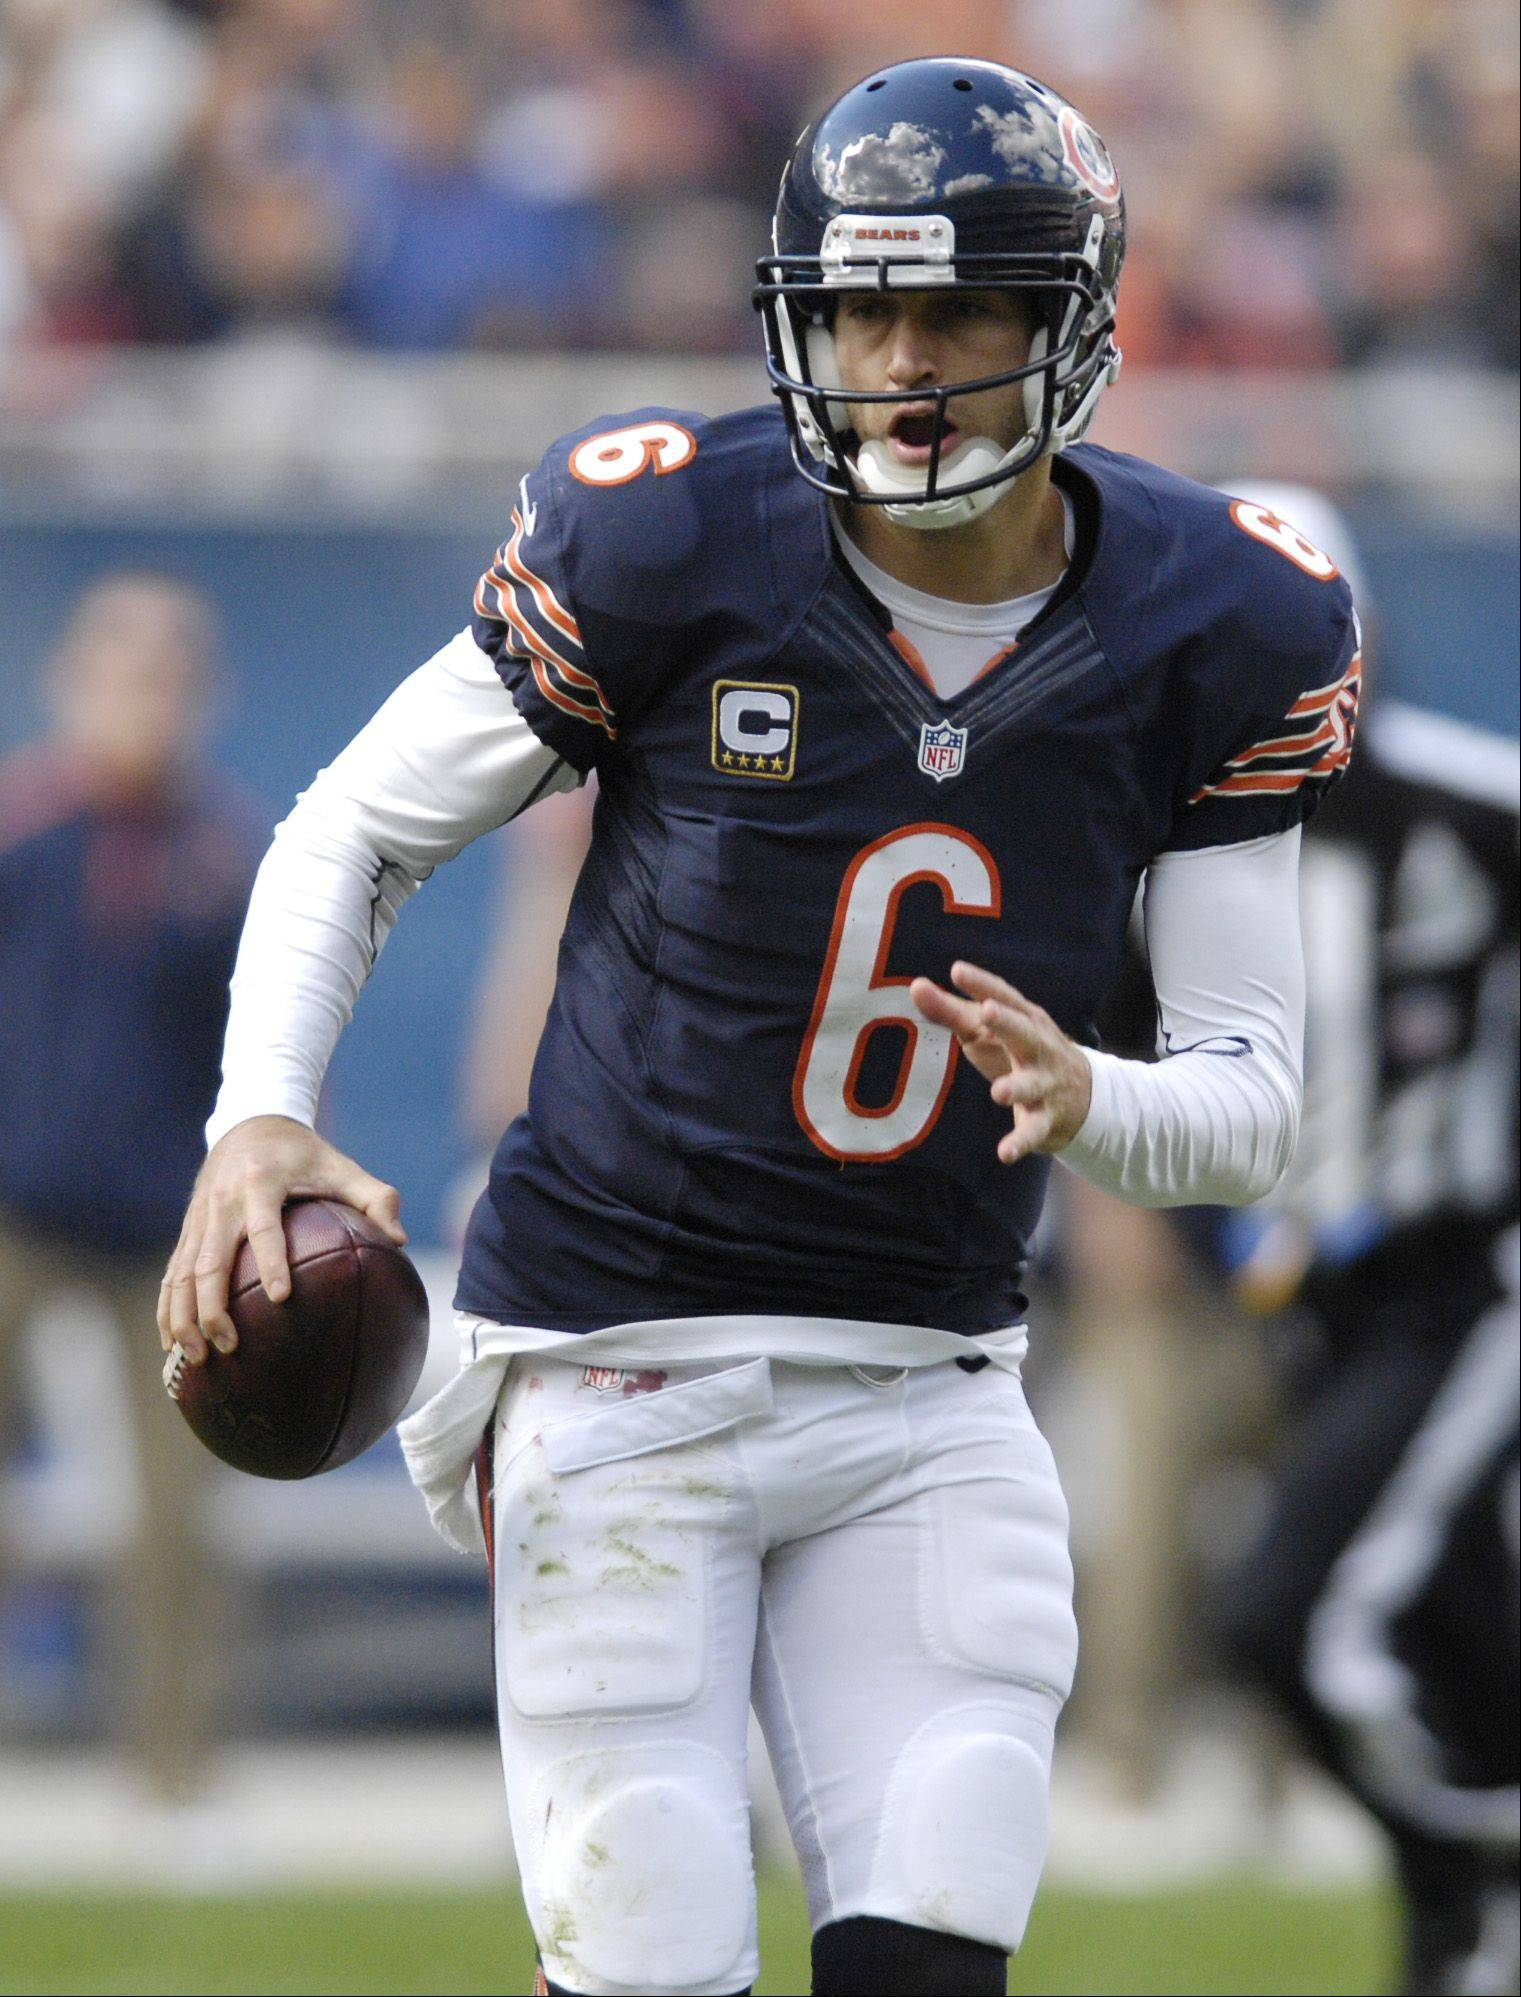 Chicago Bears quarterback Jay Cutler scrambles with the ball against the St. Louis Rams at Soldier Field in Chicago.